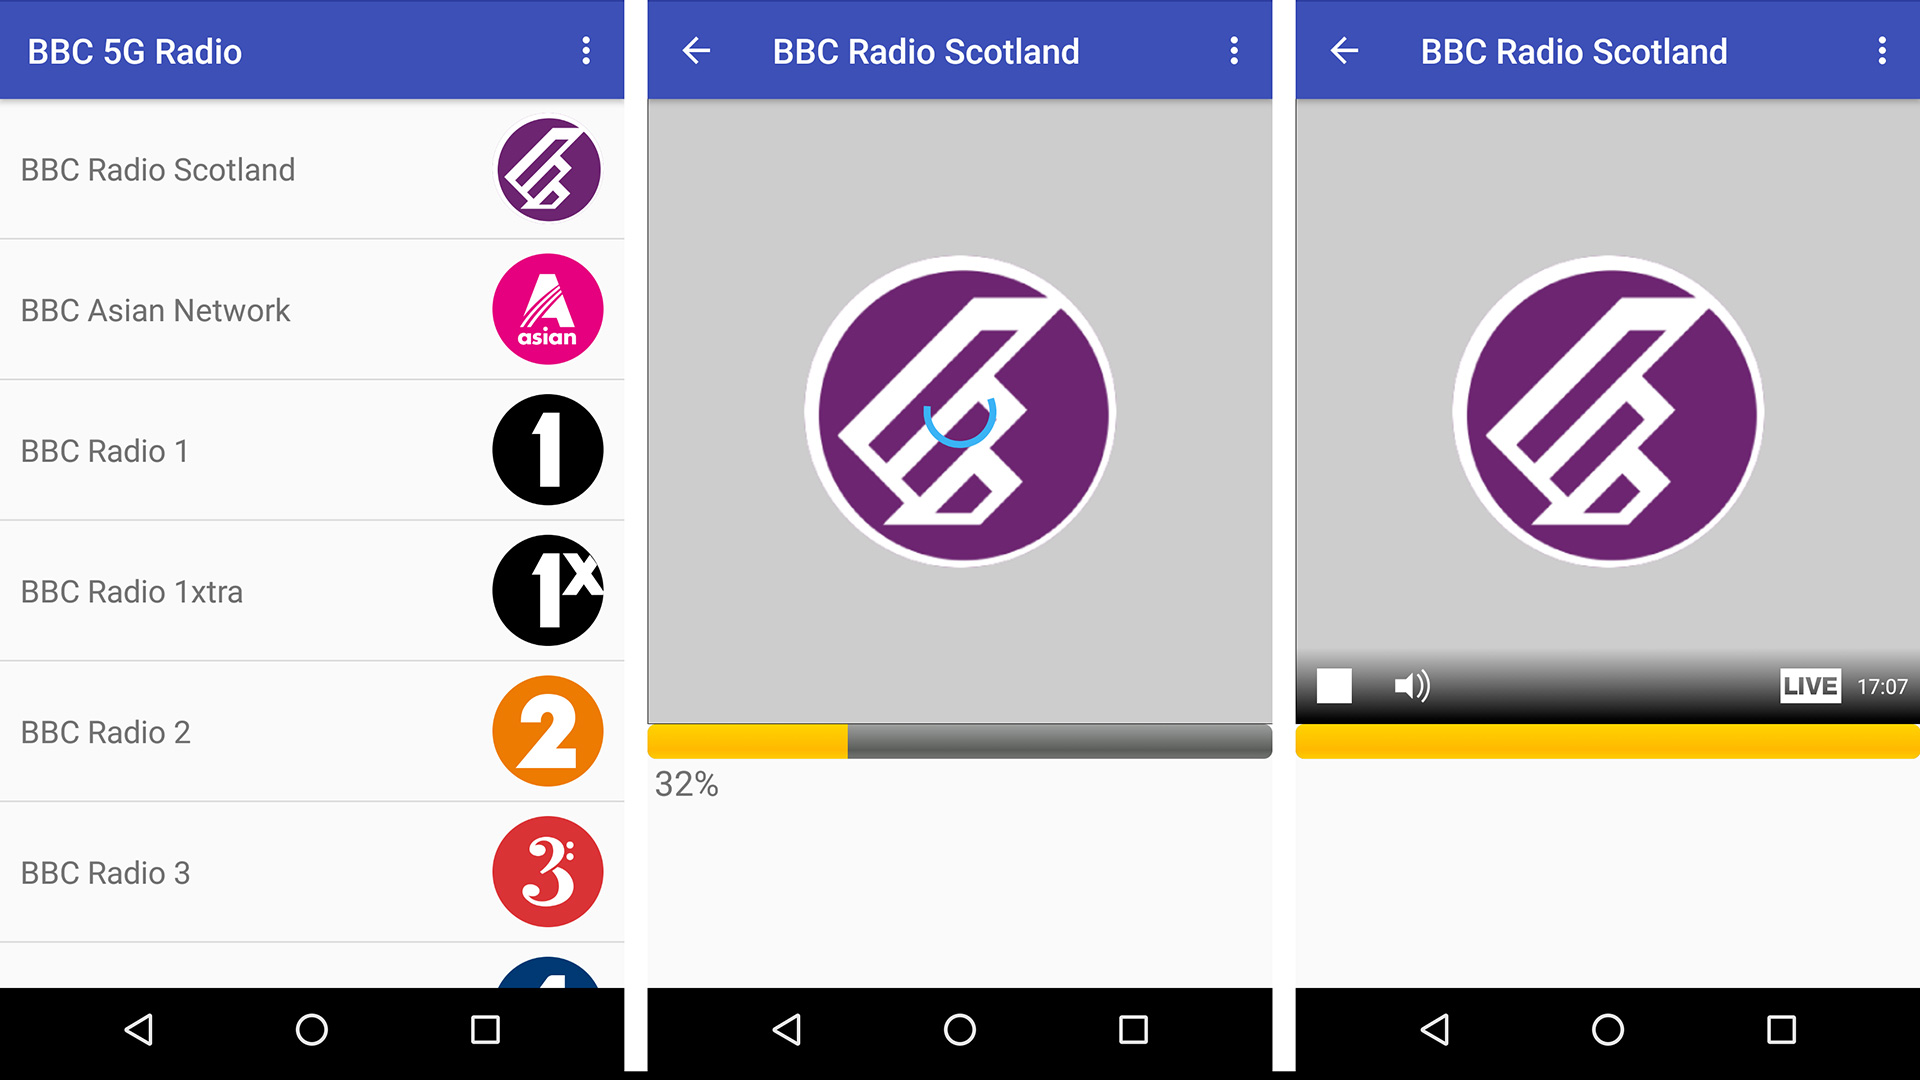 Screenshots of our 5G Radio app, playing the BBC Radio Scotland live streams.